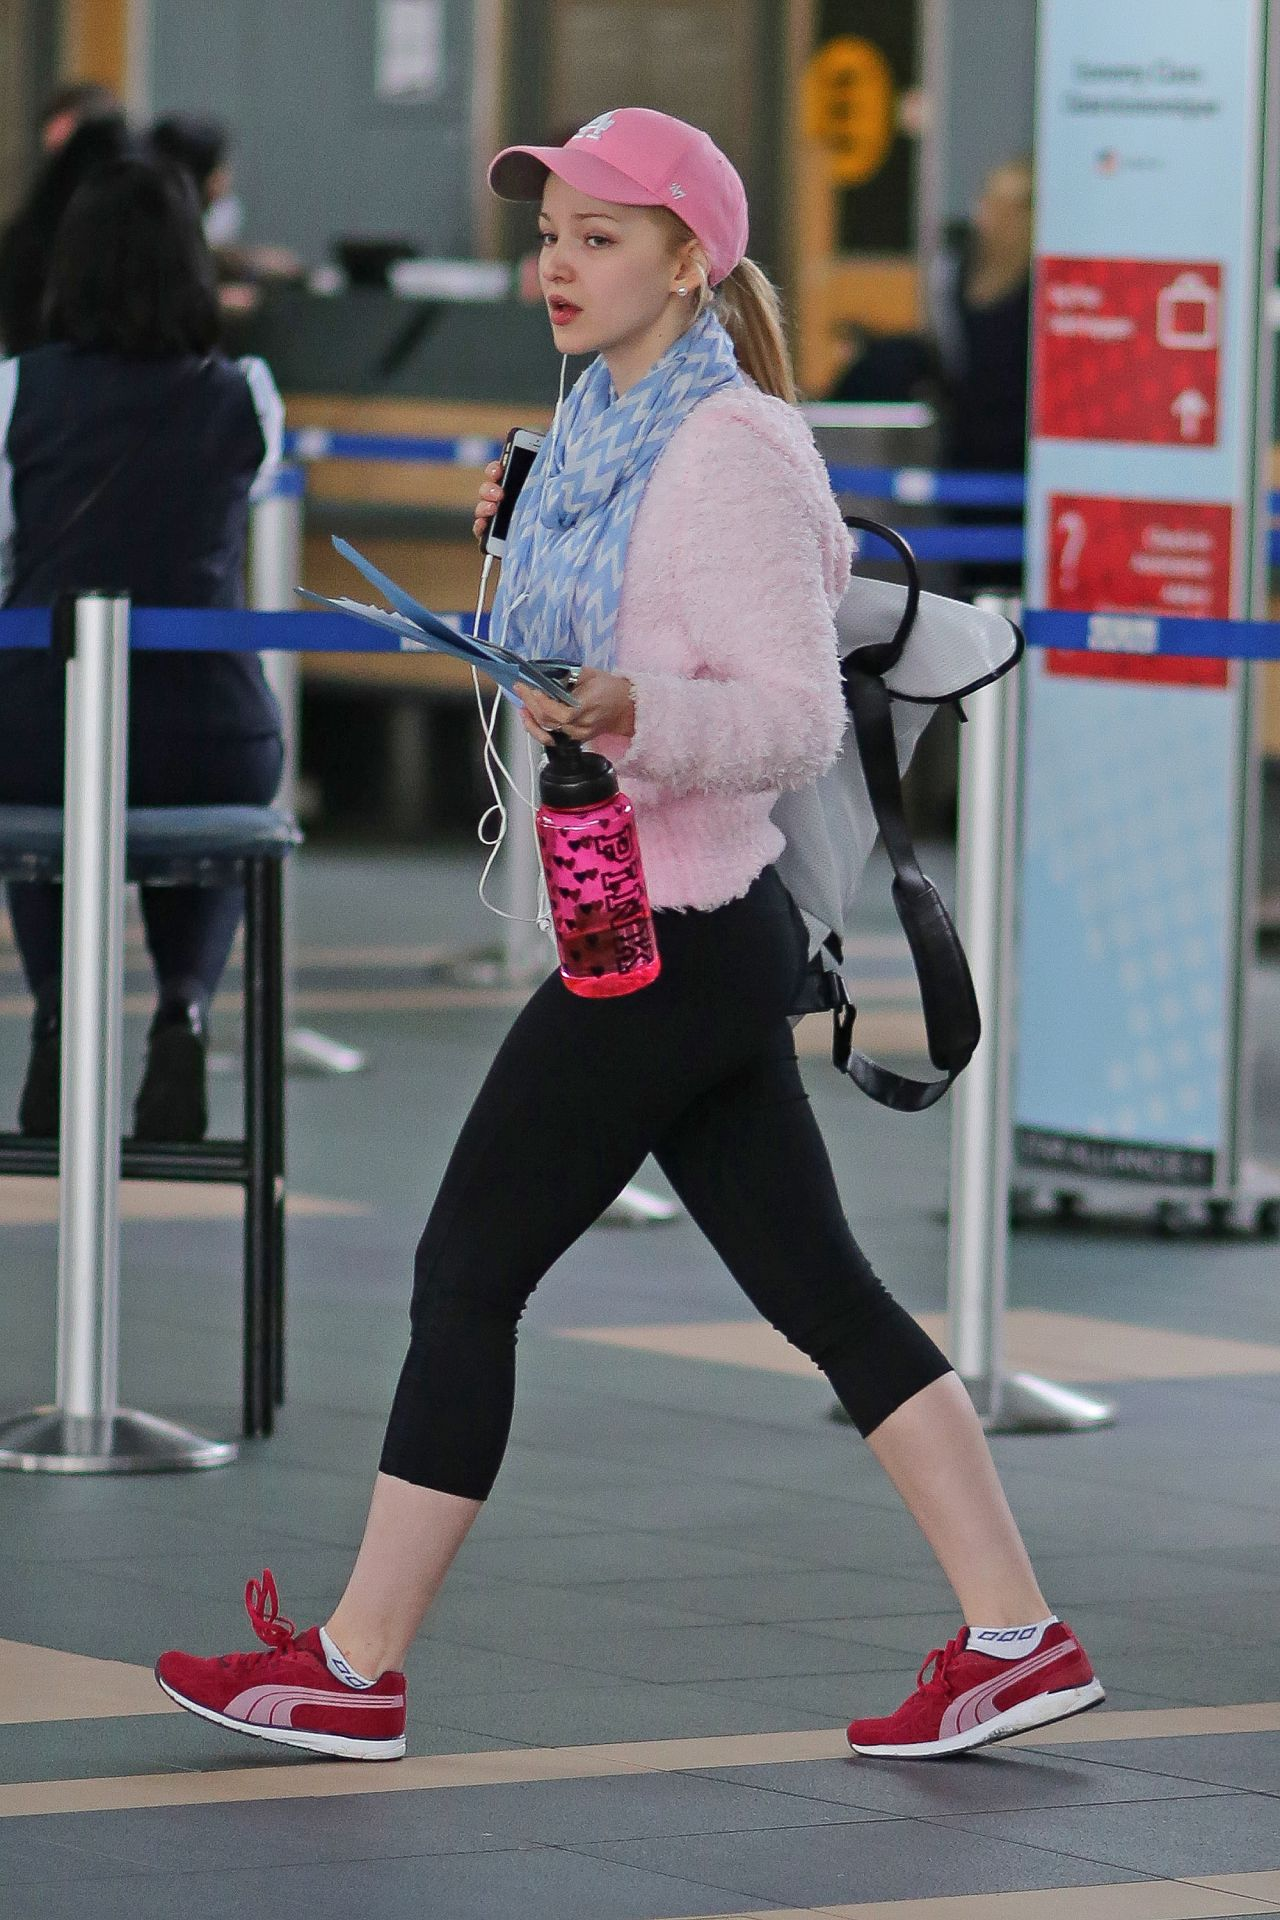 Cameron Booty in Leggings - Vancouver Airport, February 2015